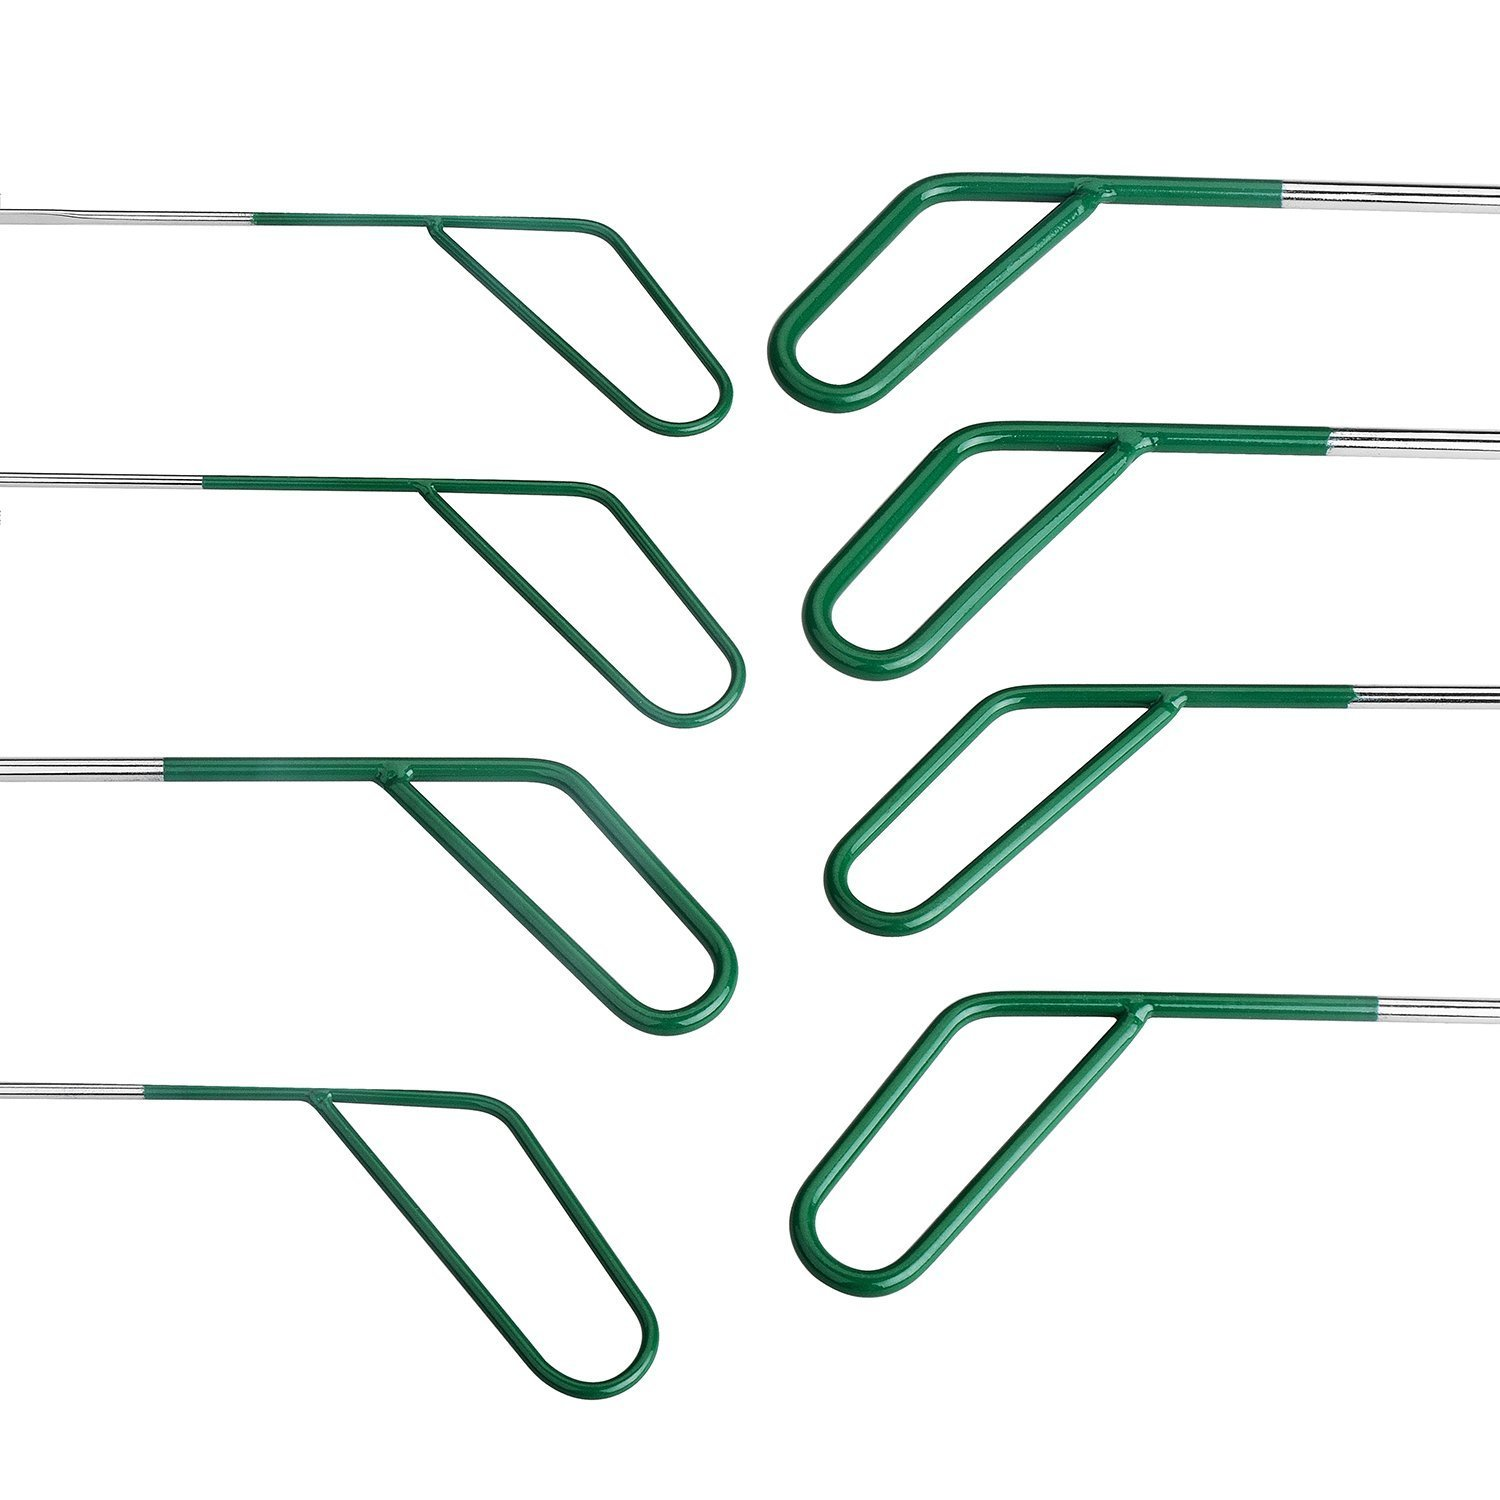 AUTOPDR Special PDR Car Body Dent Repair Removal Tools Automotive Body Dent Remover Tools Kits Set Green Stainless Steel PDR Rod Sets Hail Slide Hammer Tool Kit Set Dent Puller with Tool Bag by AUTOPDR (Image #4)